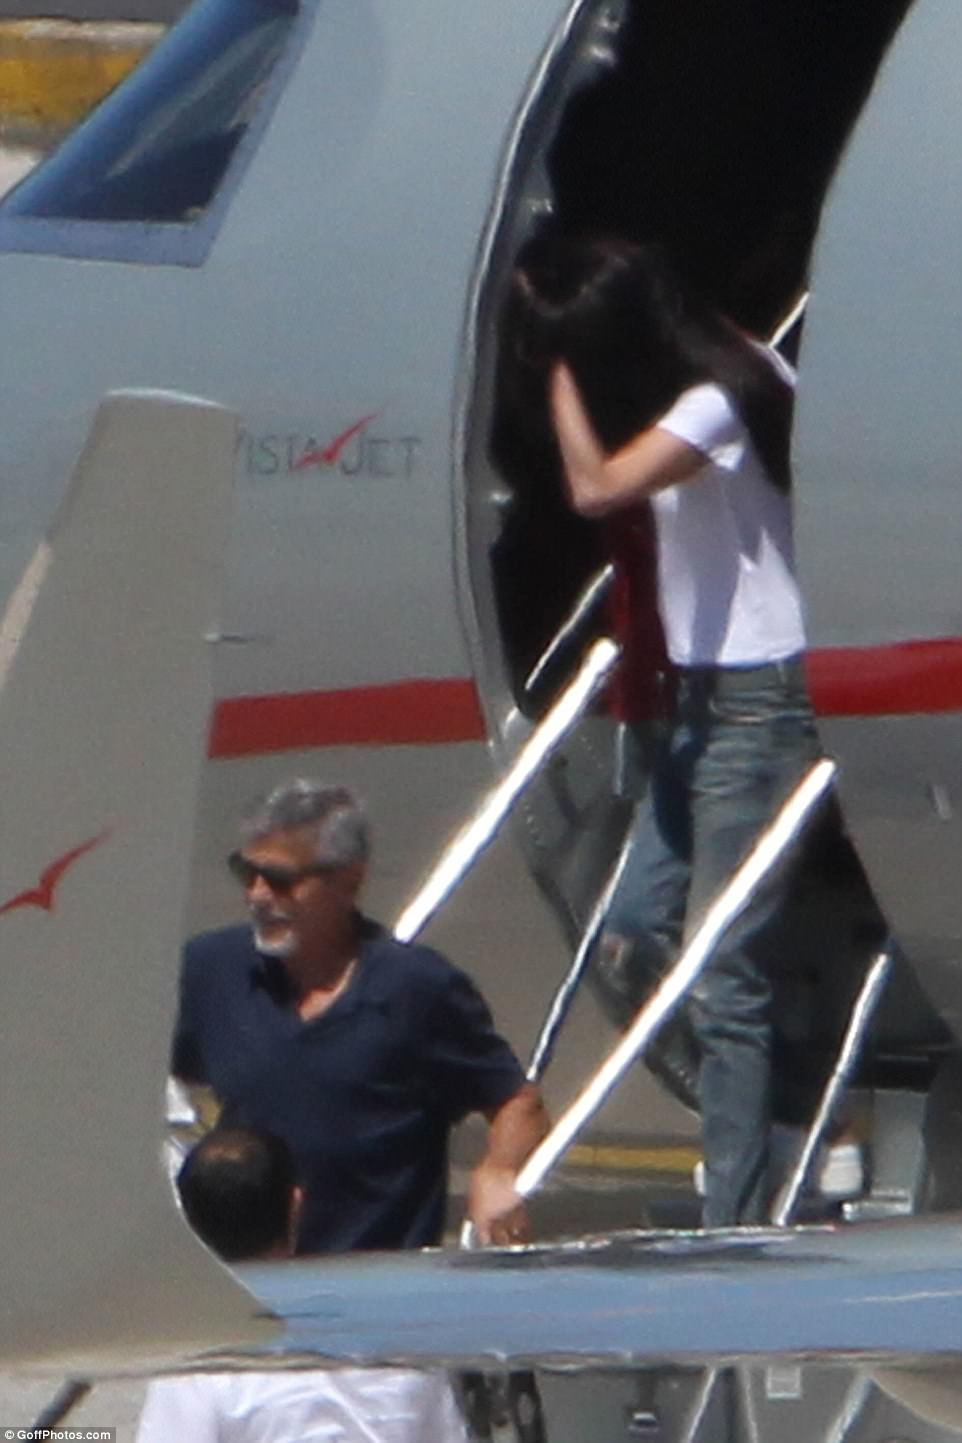 George and Amal Clooney Step Out for the First Time with Newborn Twins During Family Trip to Italy 421D433800000578-4674800-Casually_cool_Amal_39_dressed_her_svelte_frame_in_a_crisp_white_-a-130_1499432633401